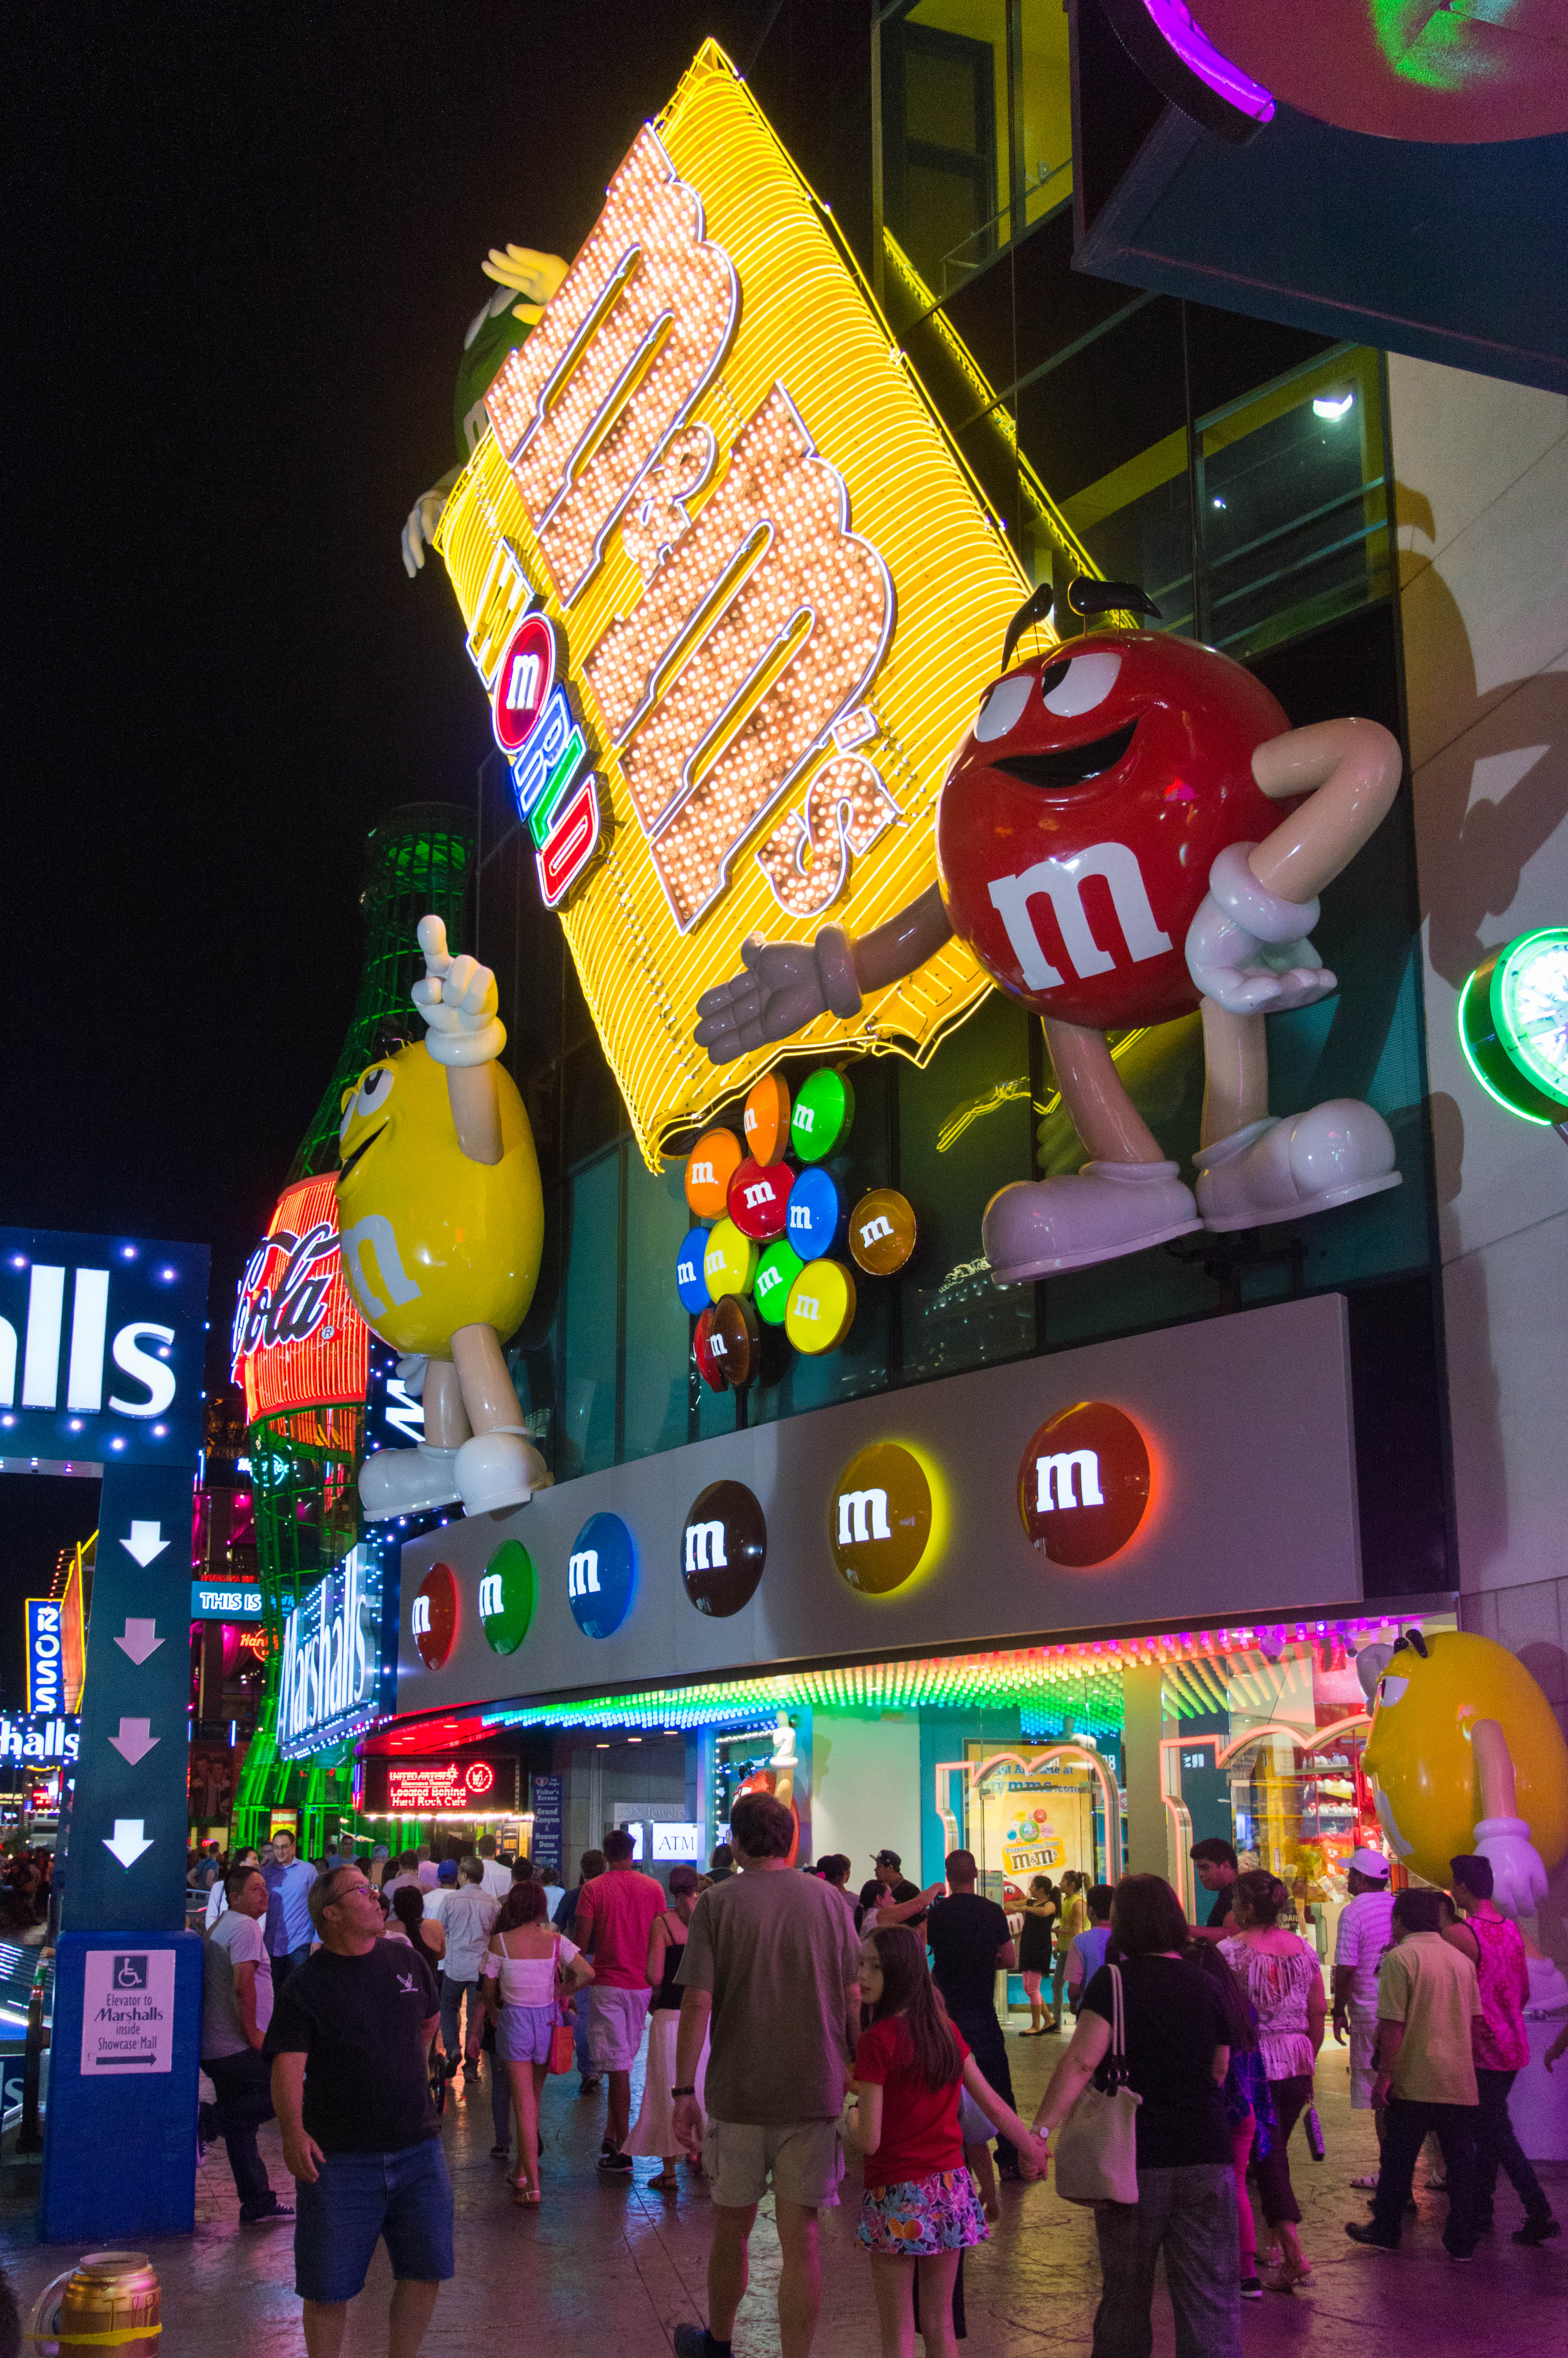 File:M&M's World, Las Vegas.jpg - Wikimedia Commons